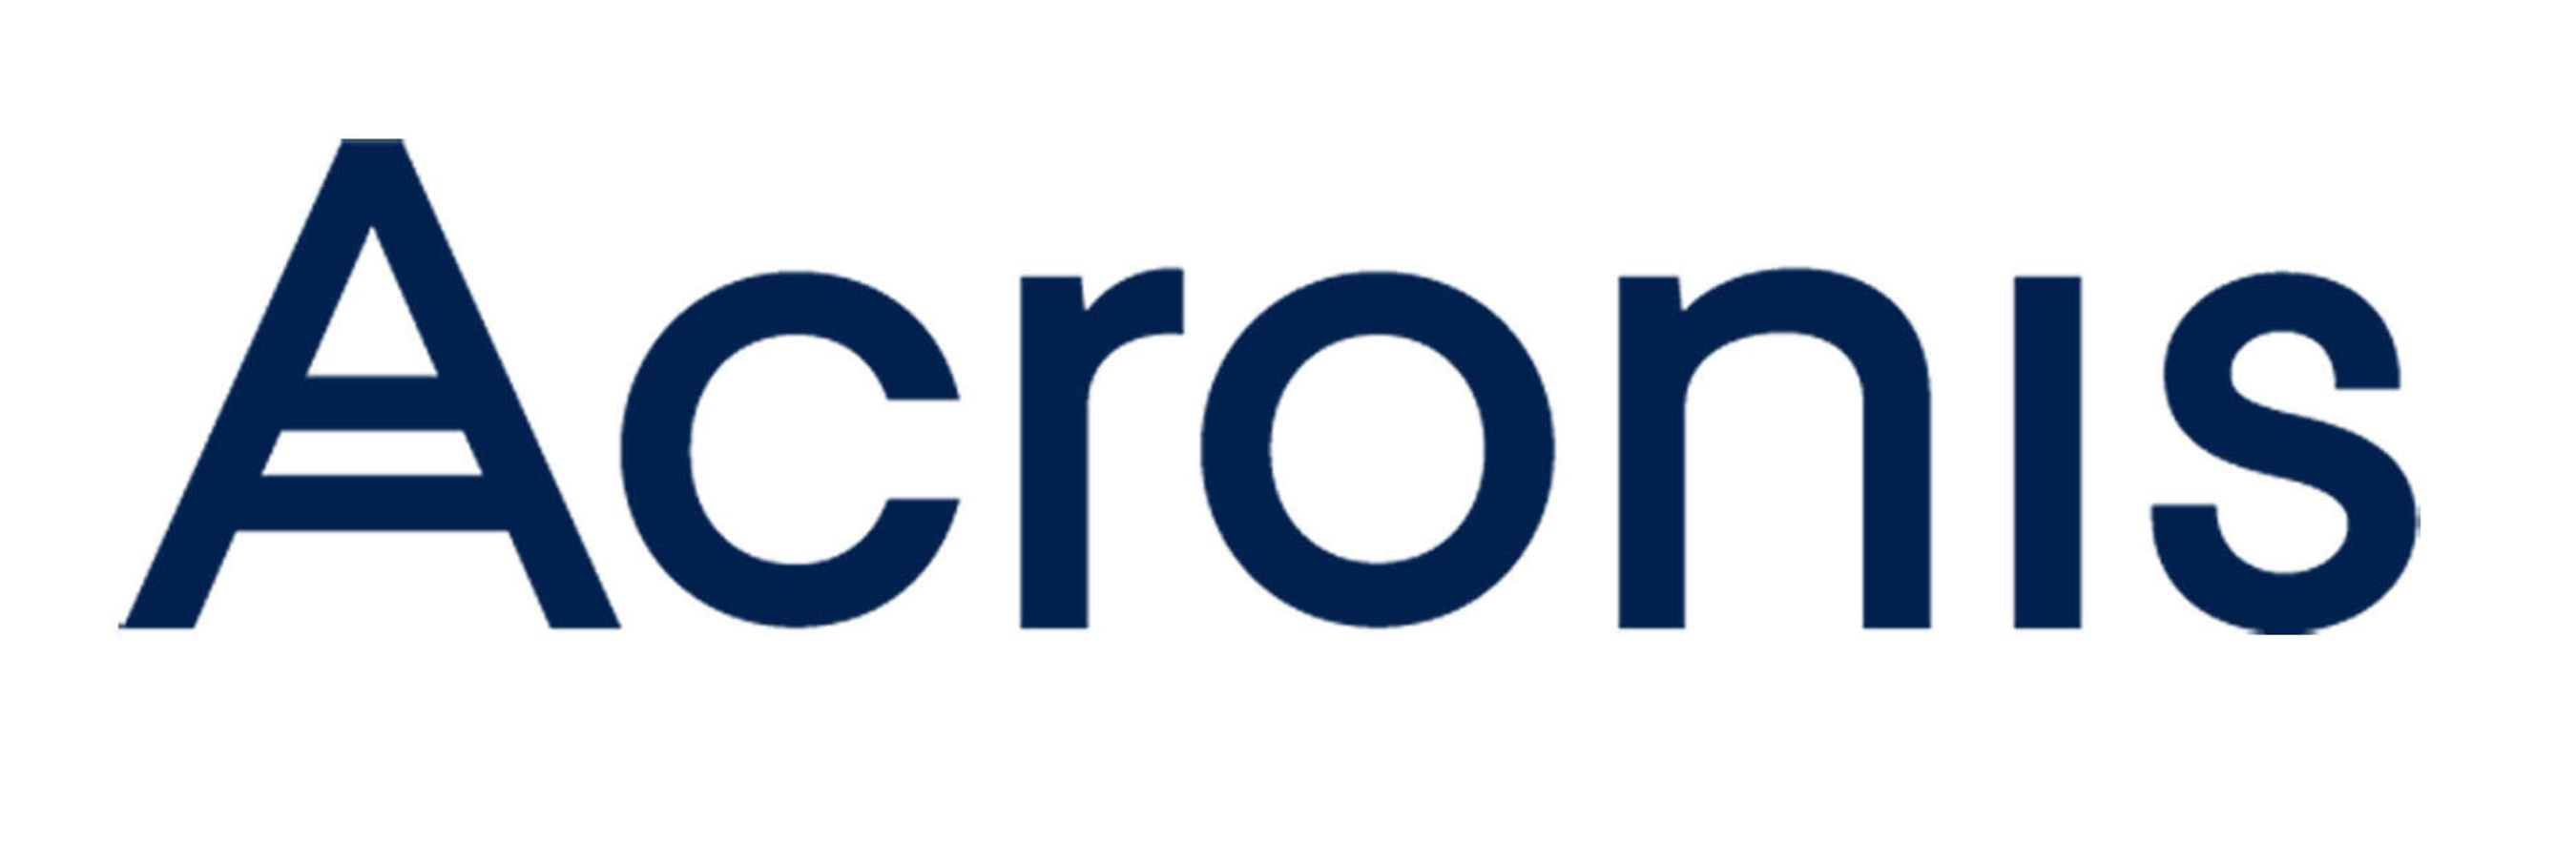 Acronis Backup Cloud Unlocks Easy Revenue for Microsoft Office 365 and Azure Data Protection with Industry's Fastest, Most Complete Solution